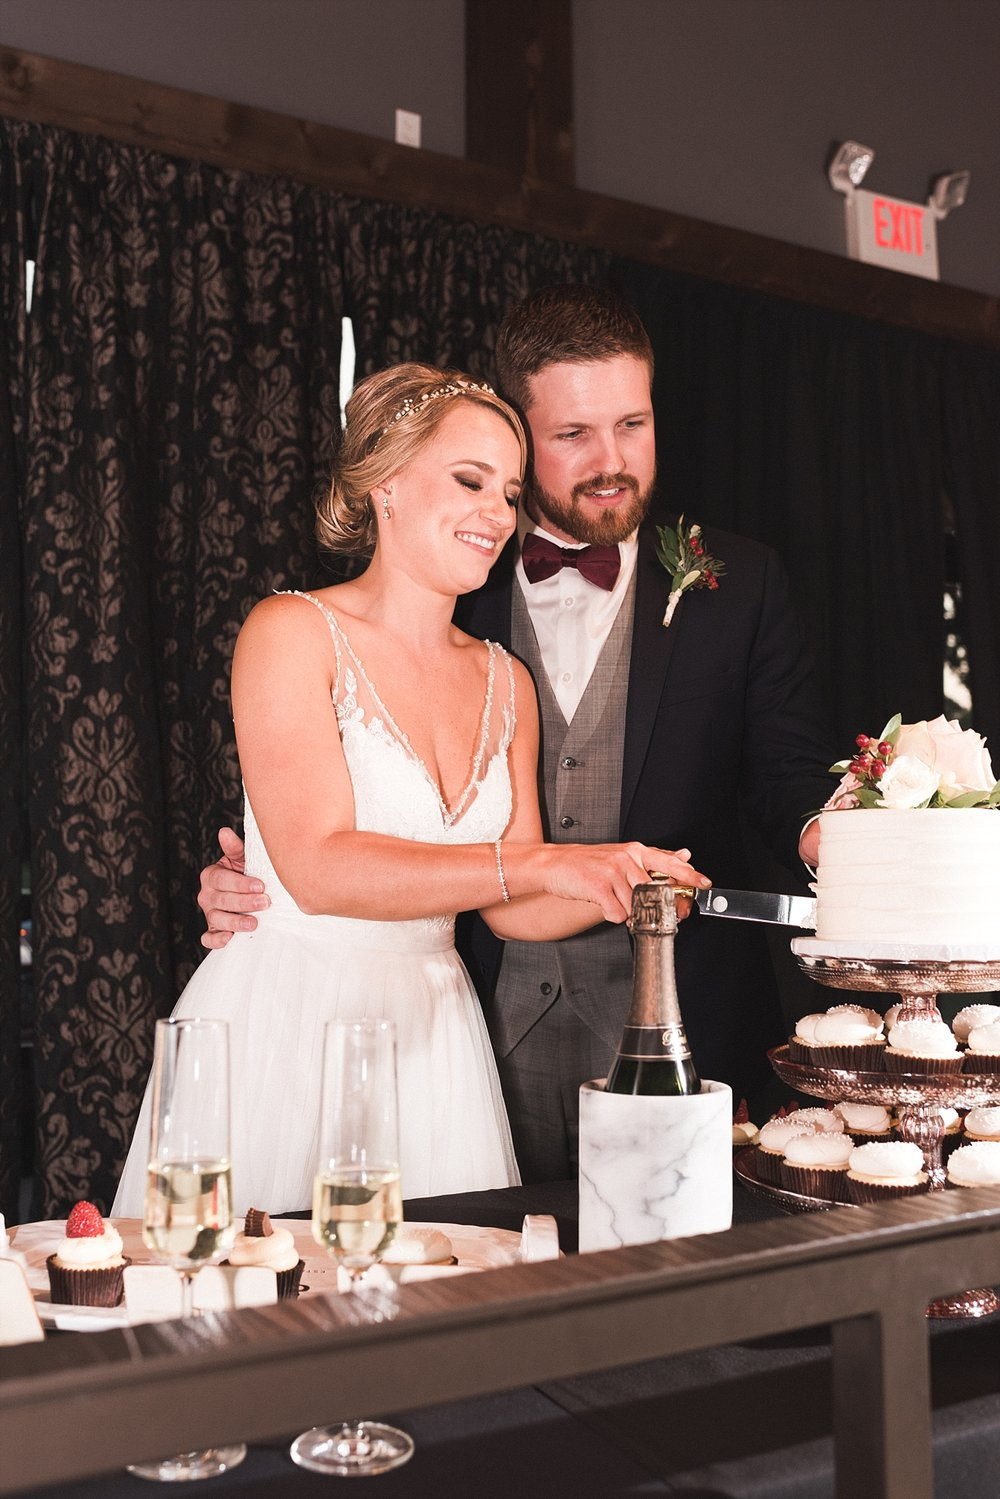 Bride groom Wedding photography reception cupcake dessert Wedding cake wedding details